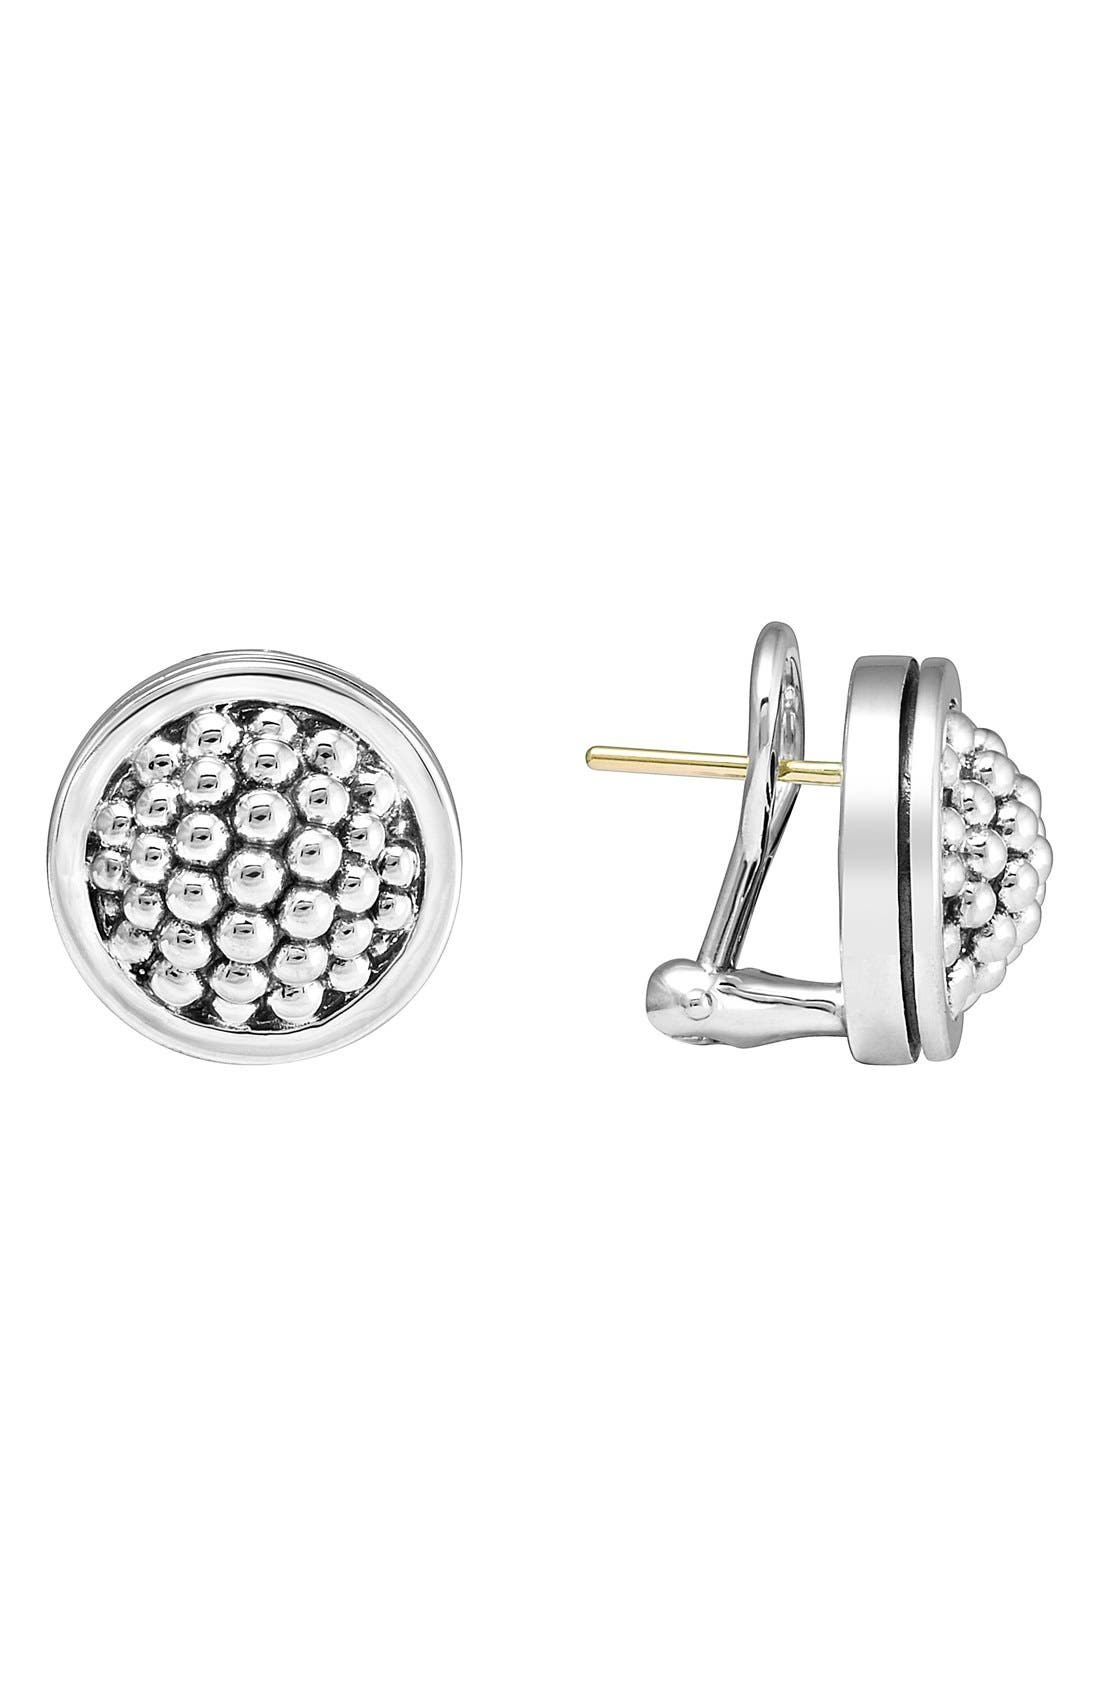 Alternate Image 1 Selected - LAGOS Caviar Stud Earrings